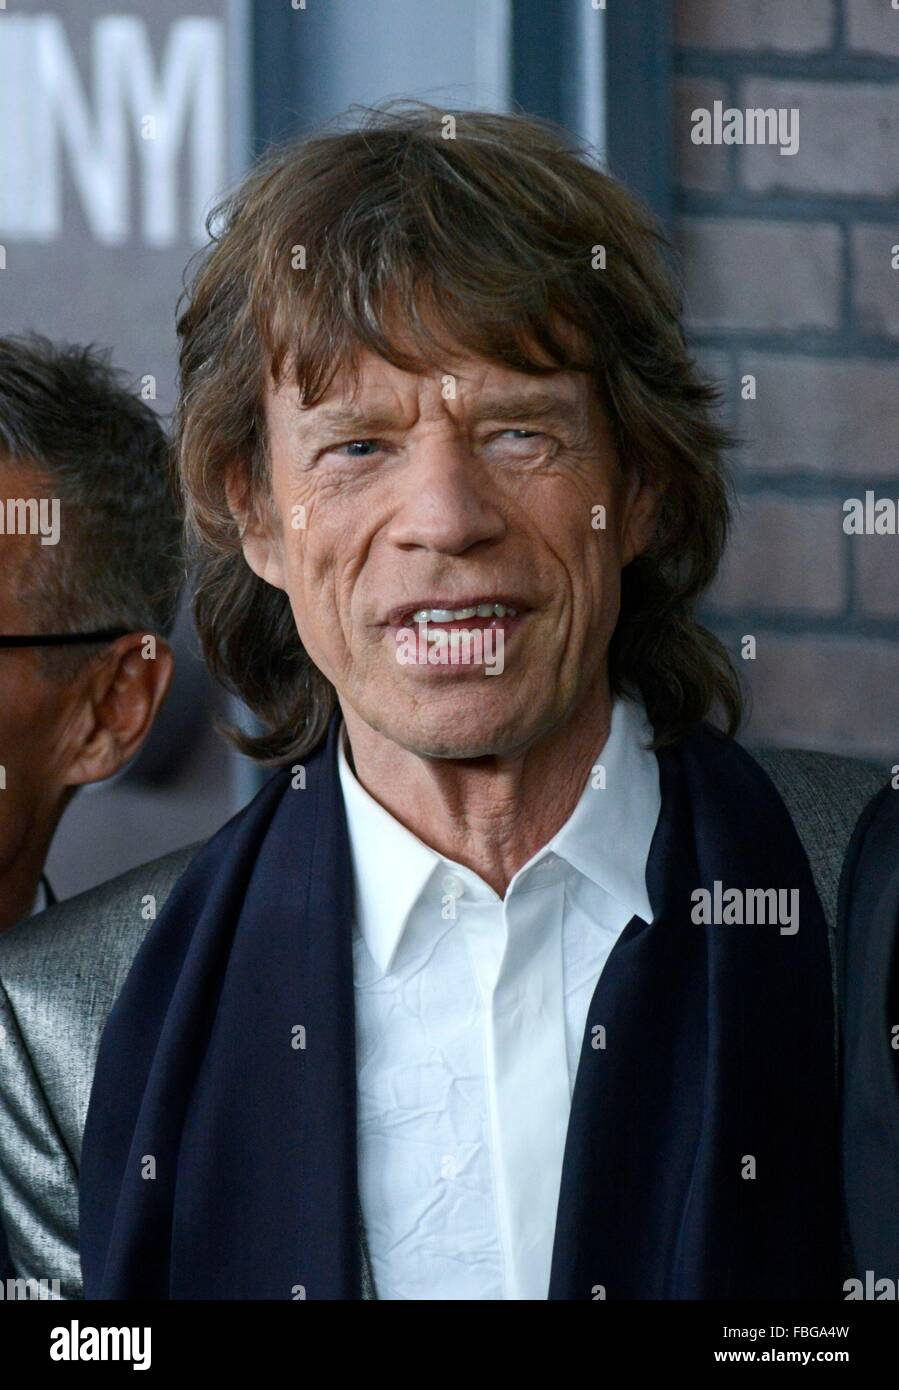 new york ny usa 15th jan 2016 mick jagger at arrivals for vinyl stock photo royalty free. Black Bedroom Furniture Sets. Home Design Ideas